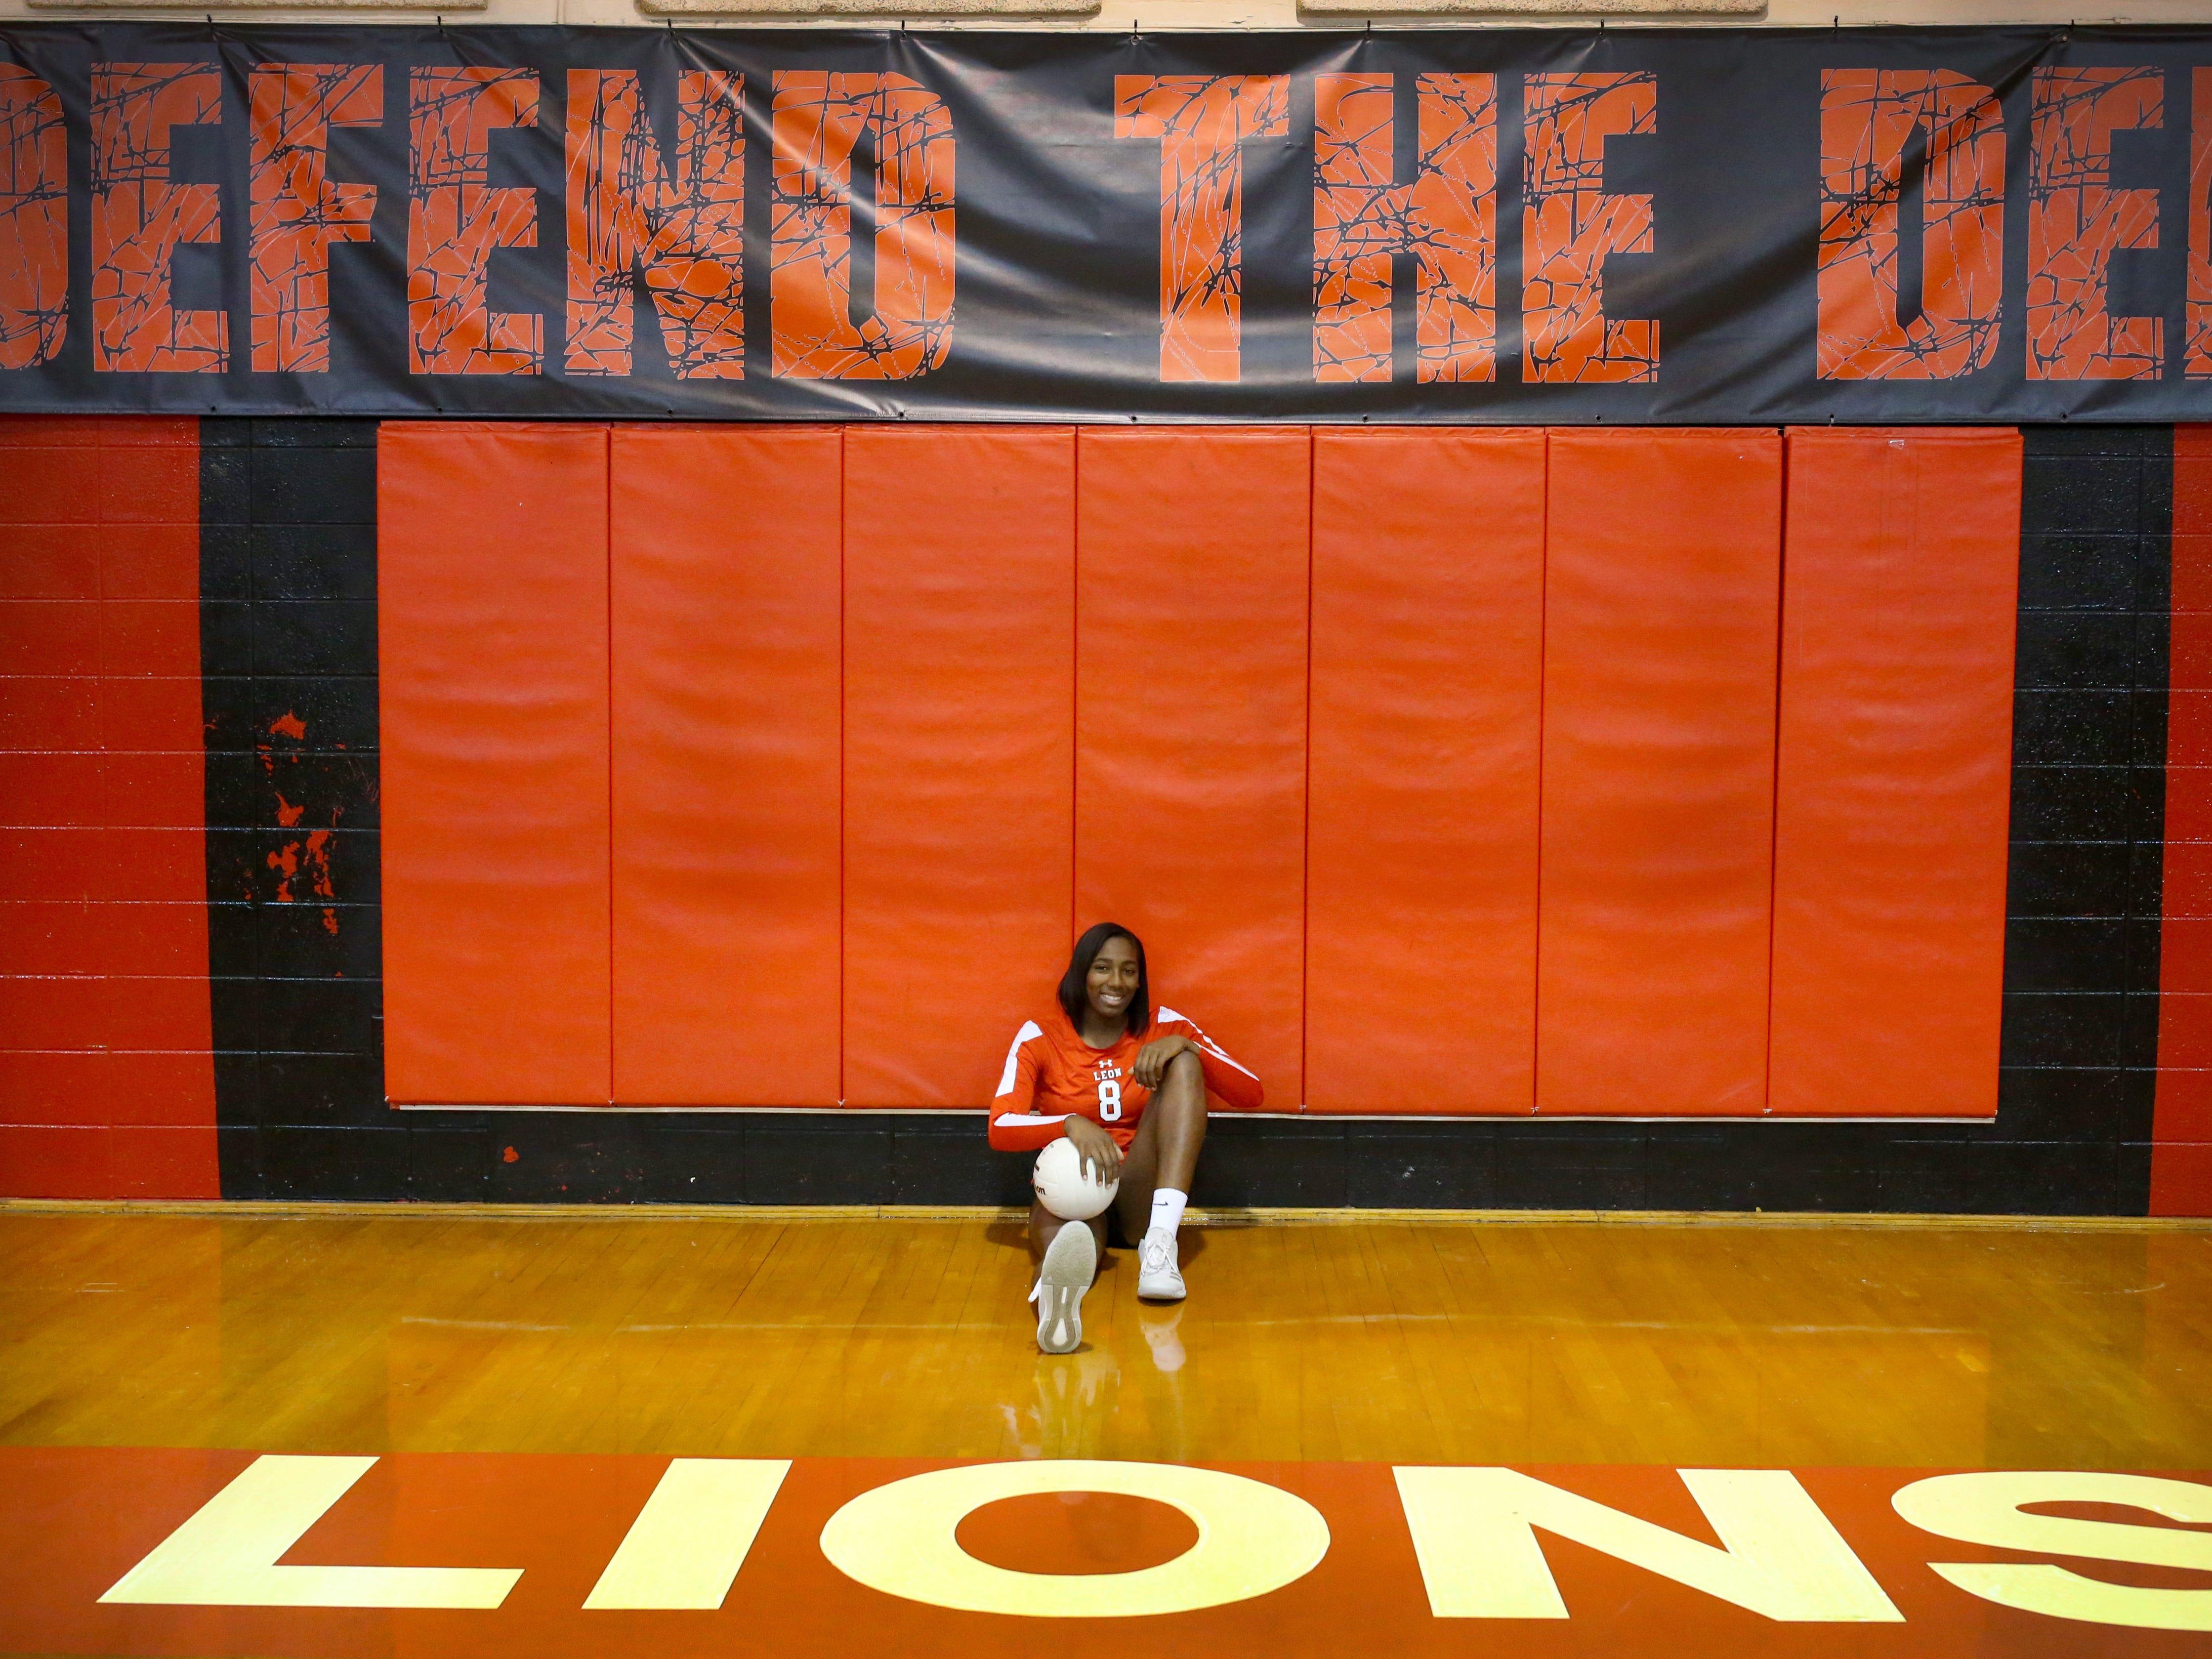 Leon senior Makayla Washington was named the 2018 All-Big Bend Player of the Year in volleyball after amassing 346 kills, 96 blocks, and 140 digs while playing six rotations as a middle blocker for a Lions team that went 27-4 and reached the Class 8A state semifinals for a fourth straight year. Washington becomes just the second player in area history to become a four-time Player of the Year.